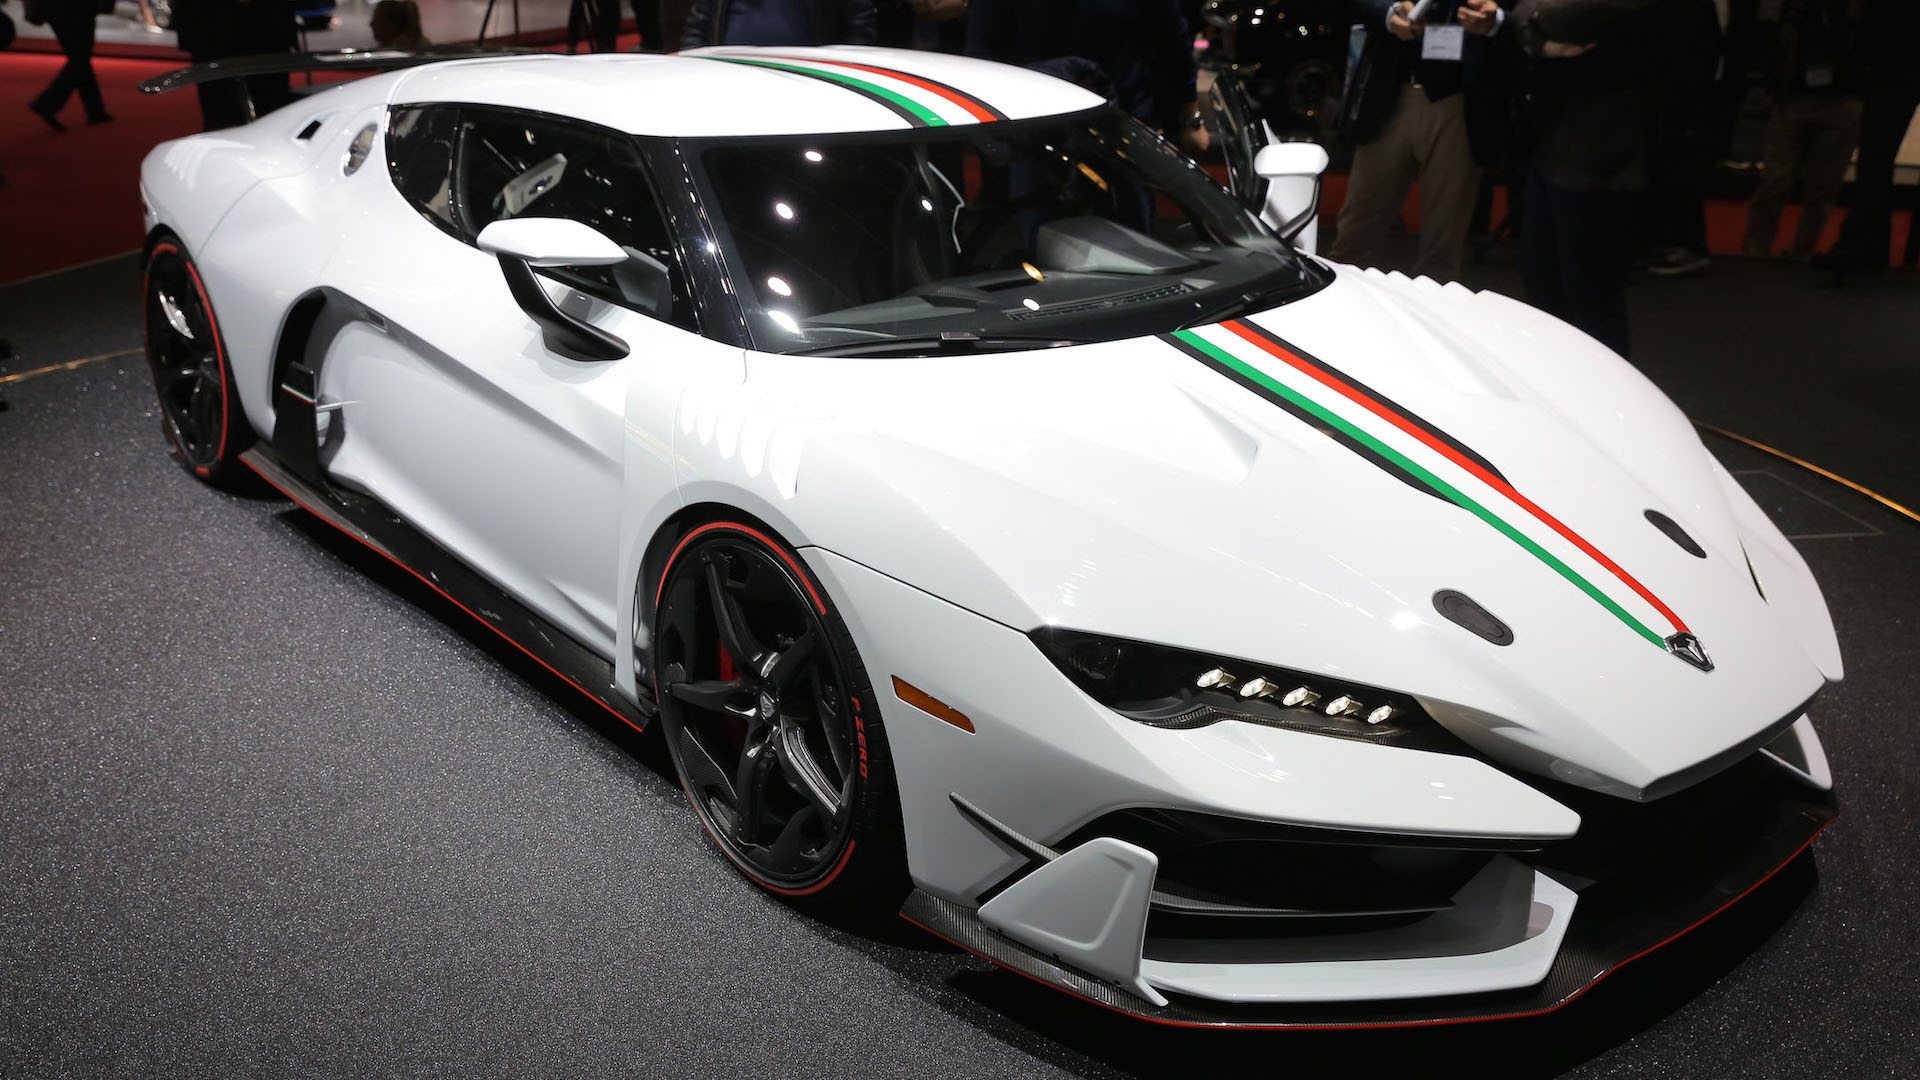 Italdesign Zerouno Visits Geneva With Racy Carbon Fiber Body